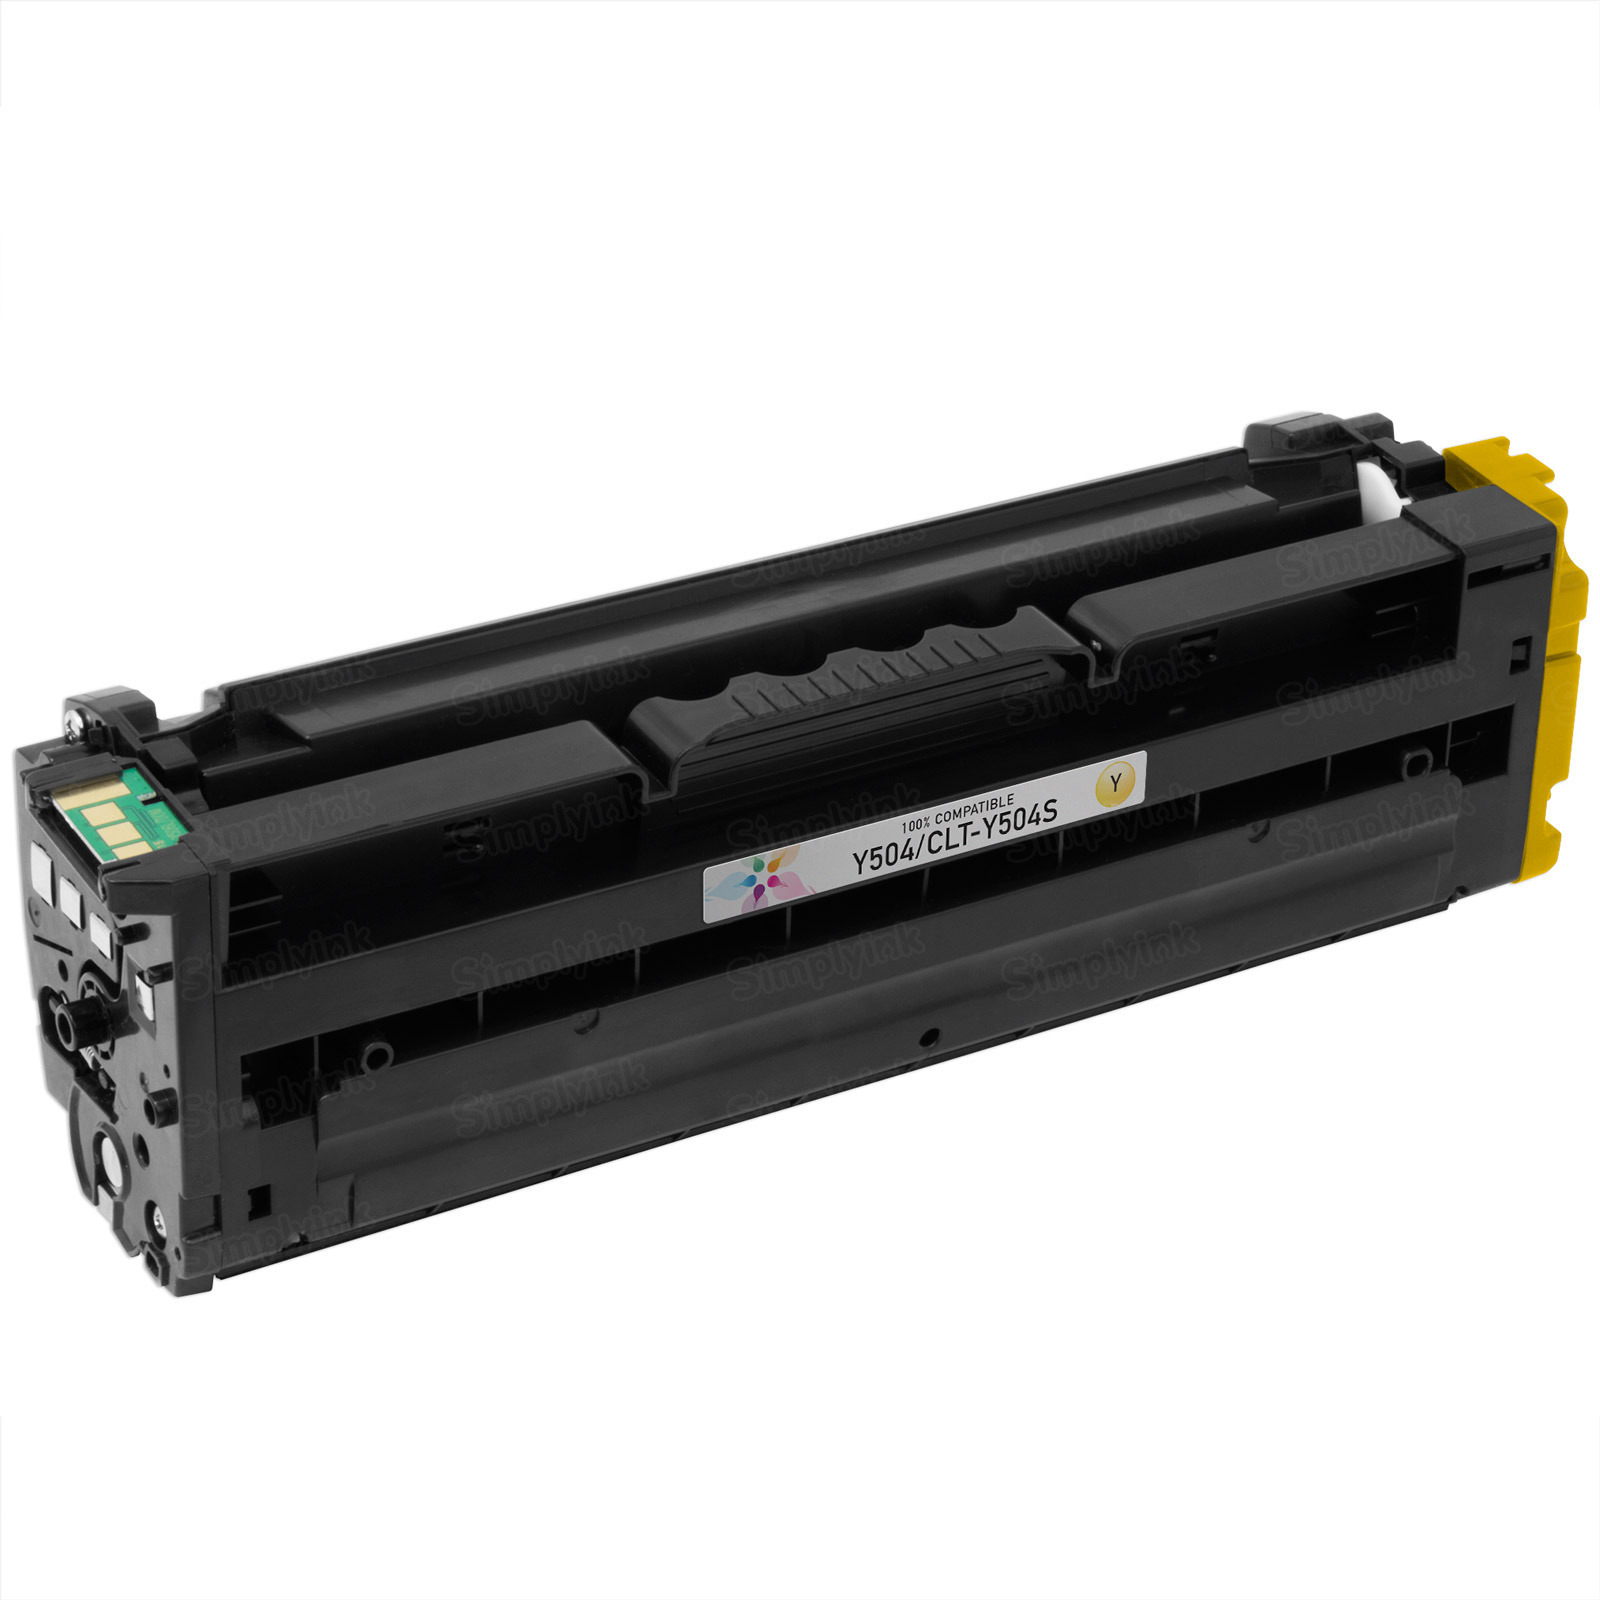 Compatible Yellow Toner for Samsung Y504